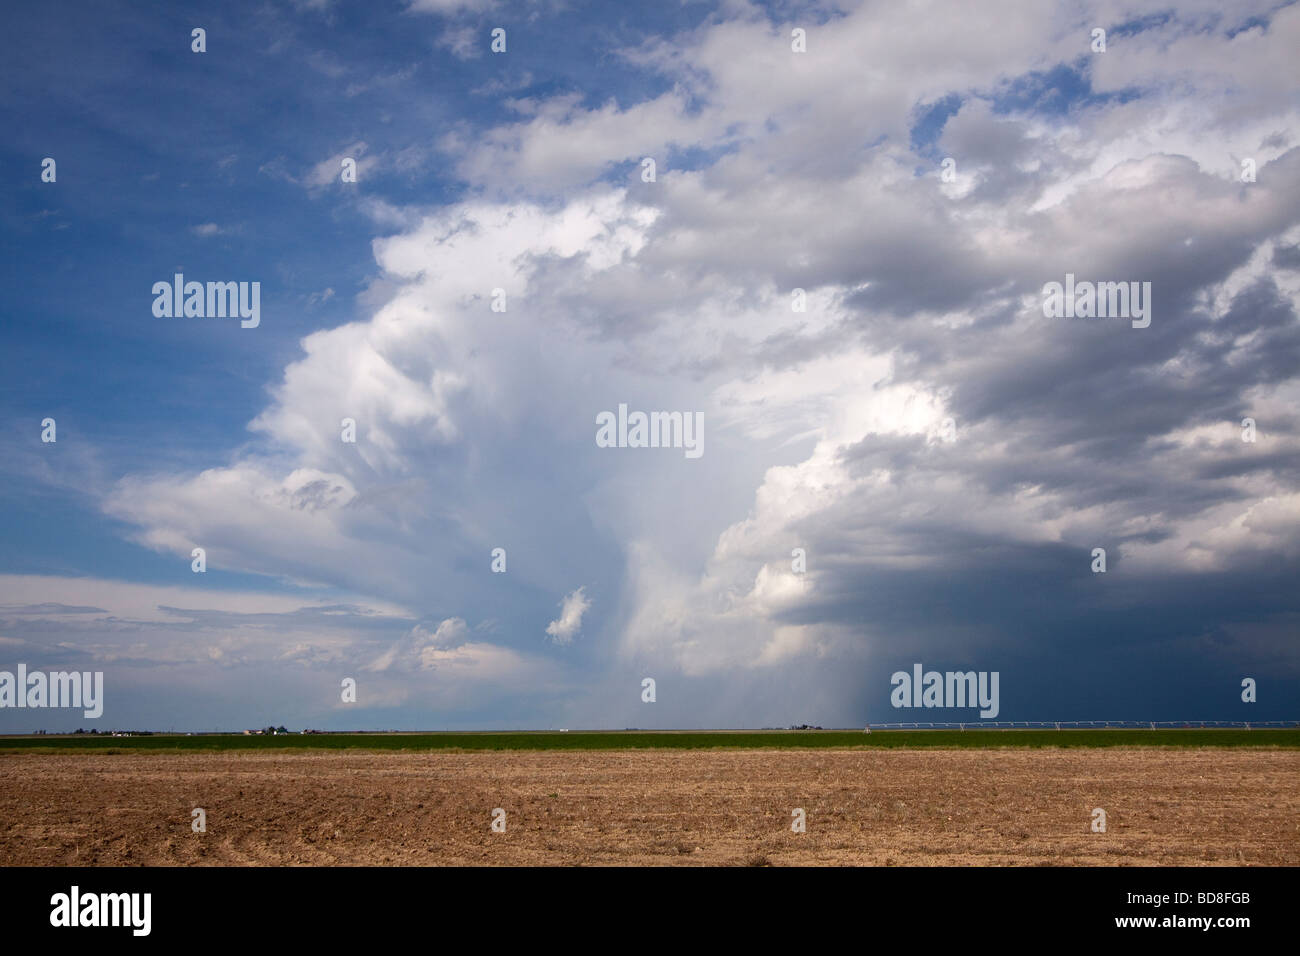 A thunderstorm in the distance in southern Kansas June 4 2009 - Stock Image